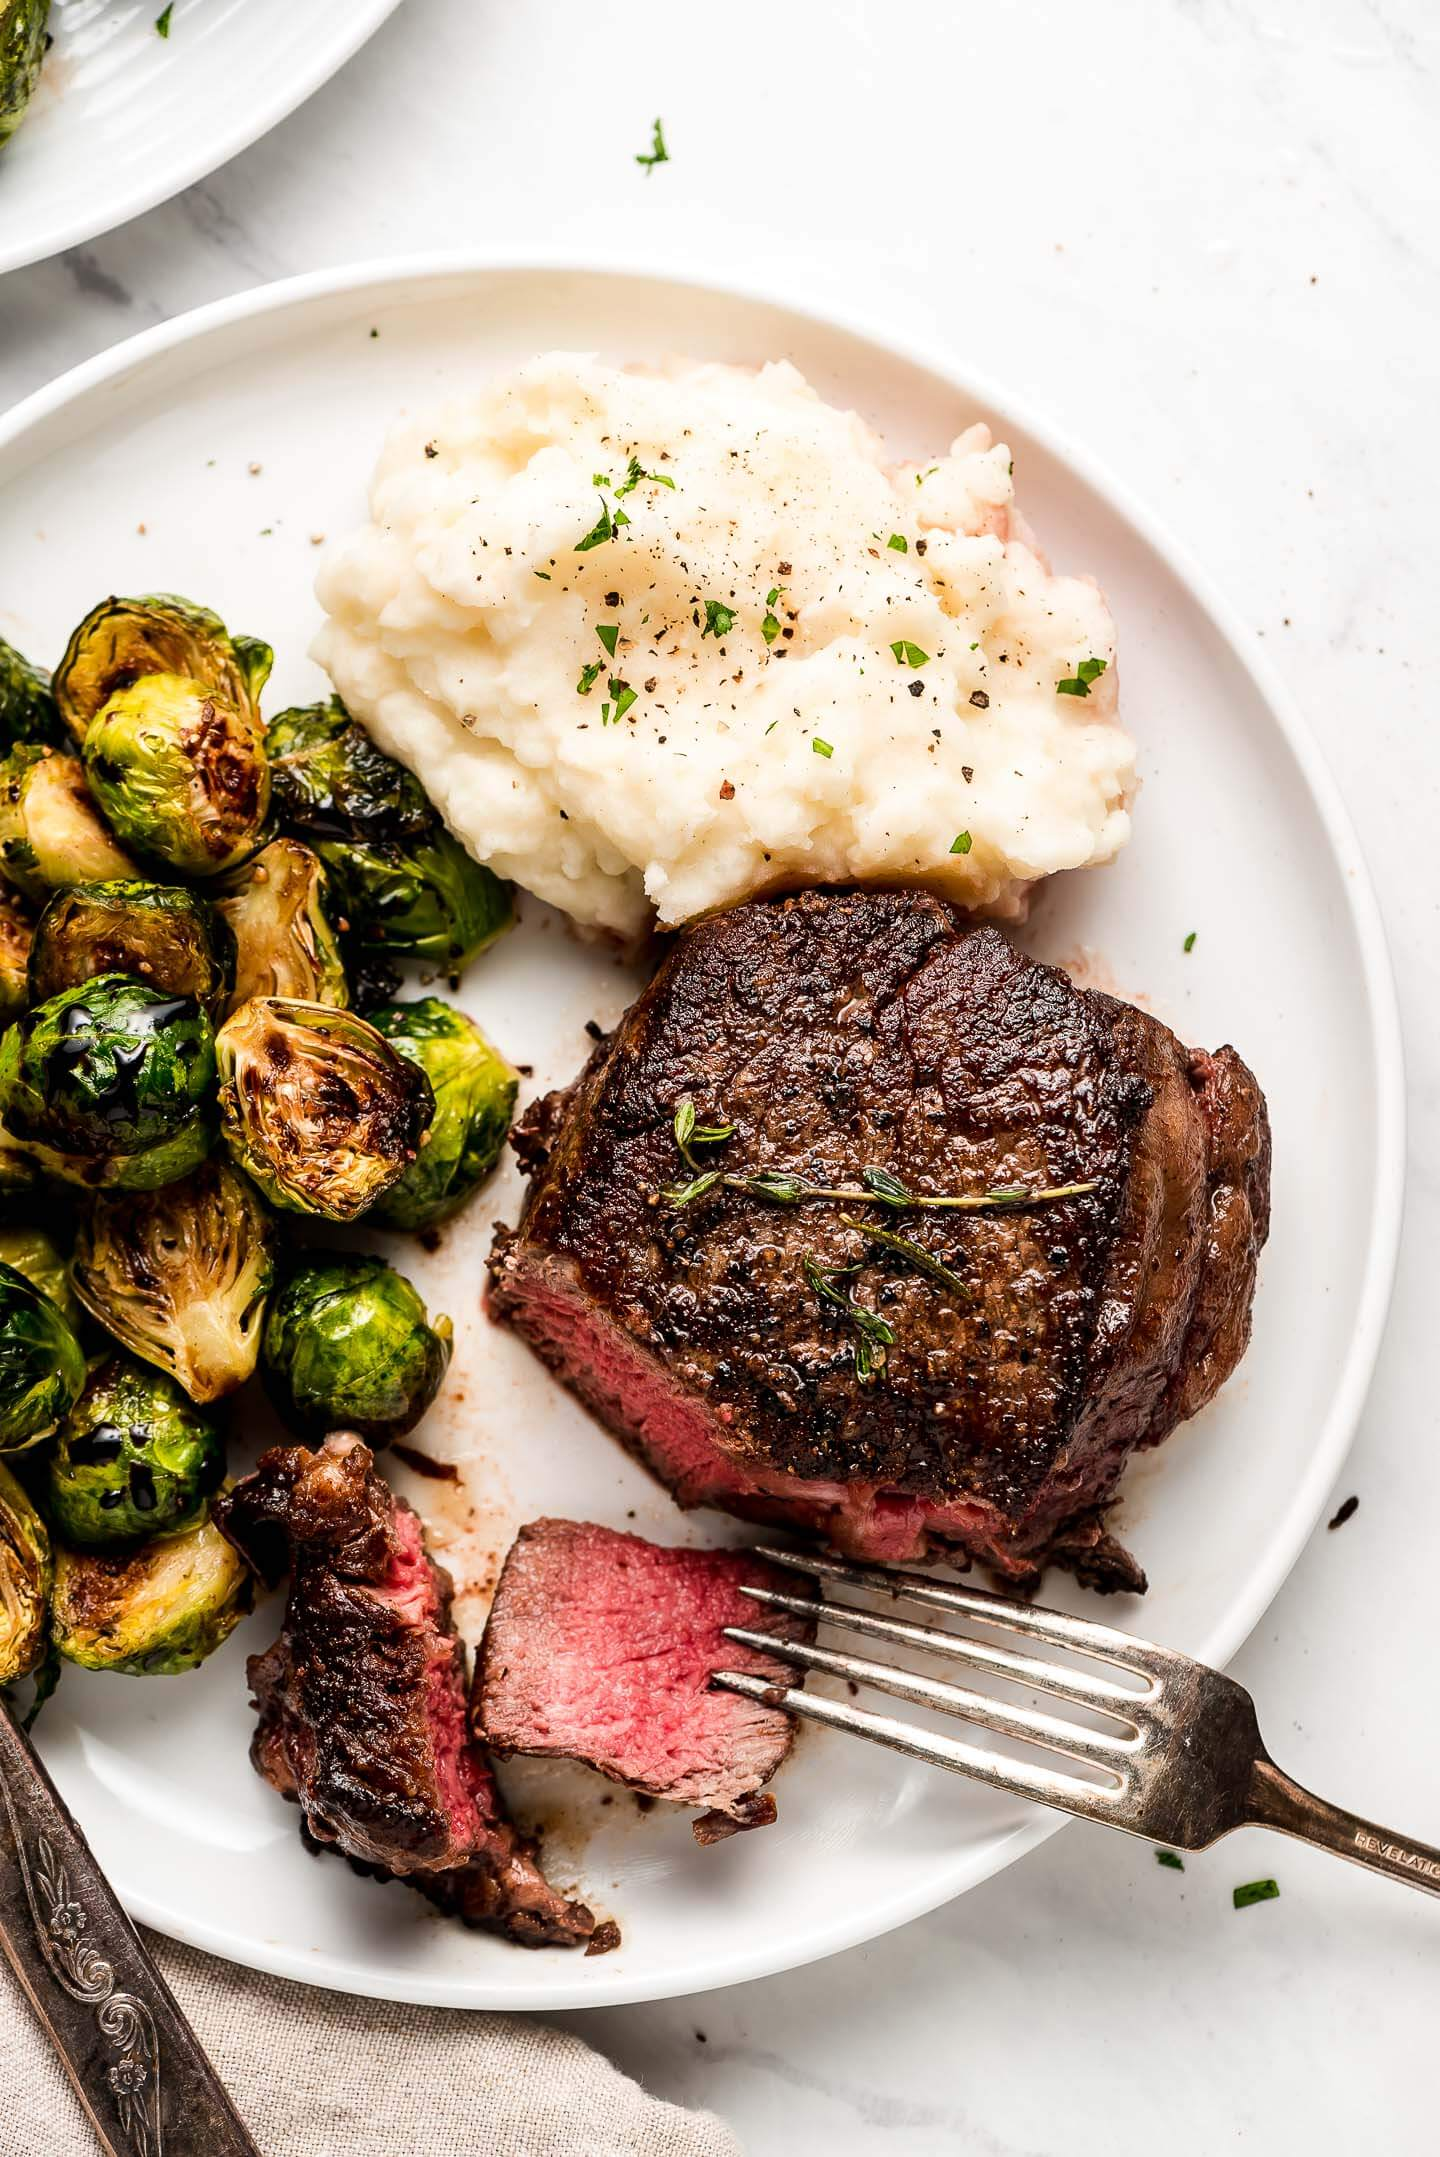 Steak, mashed potatoes, and brussels sprouts on a plate.